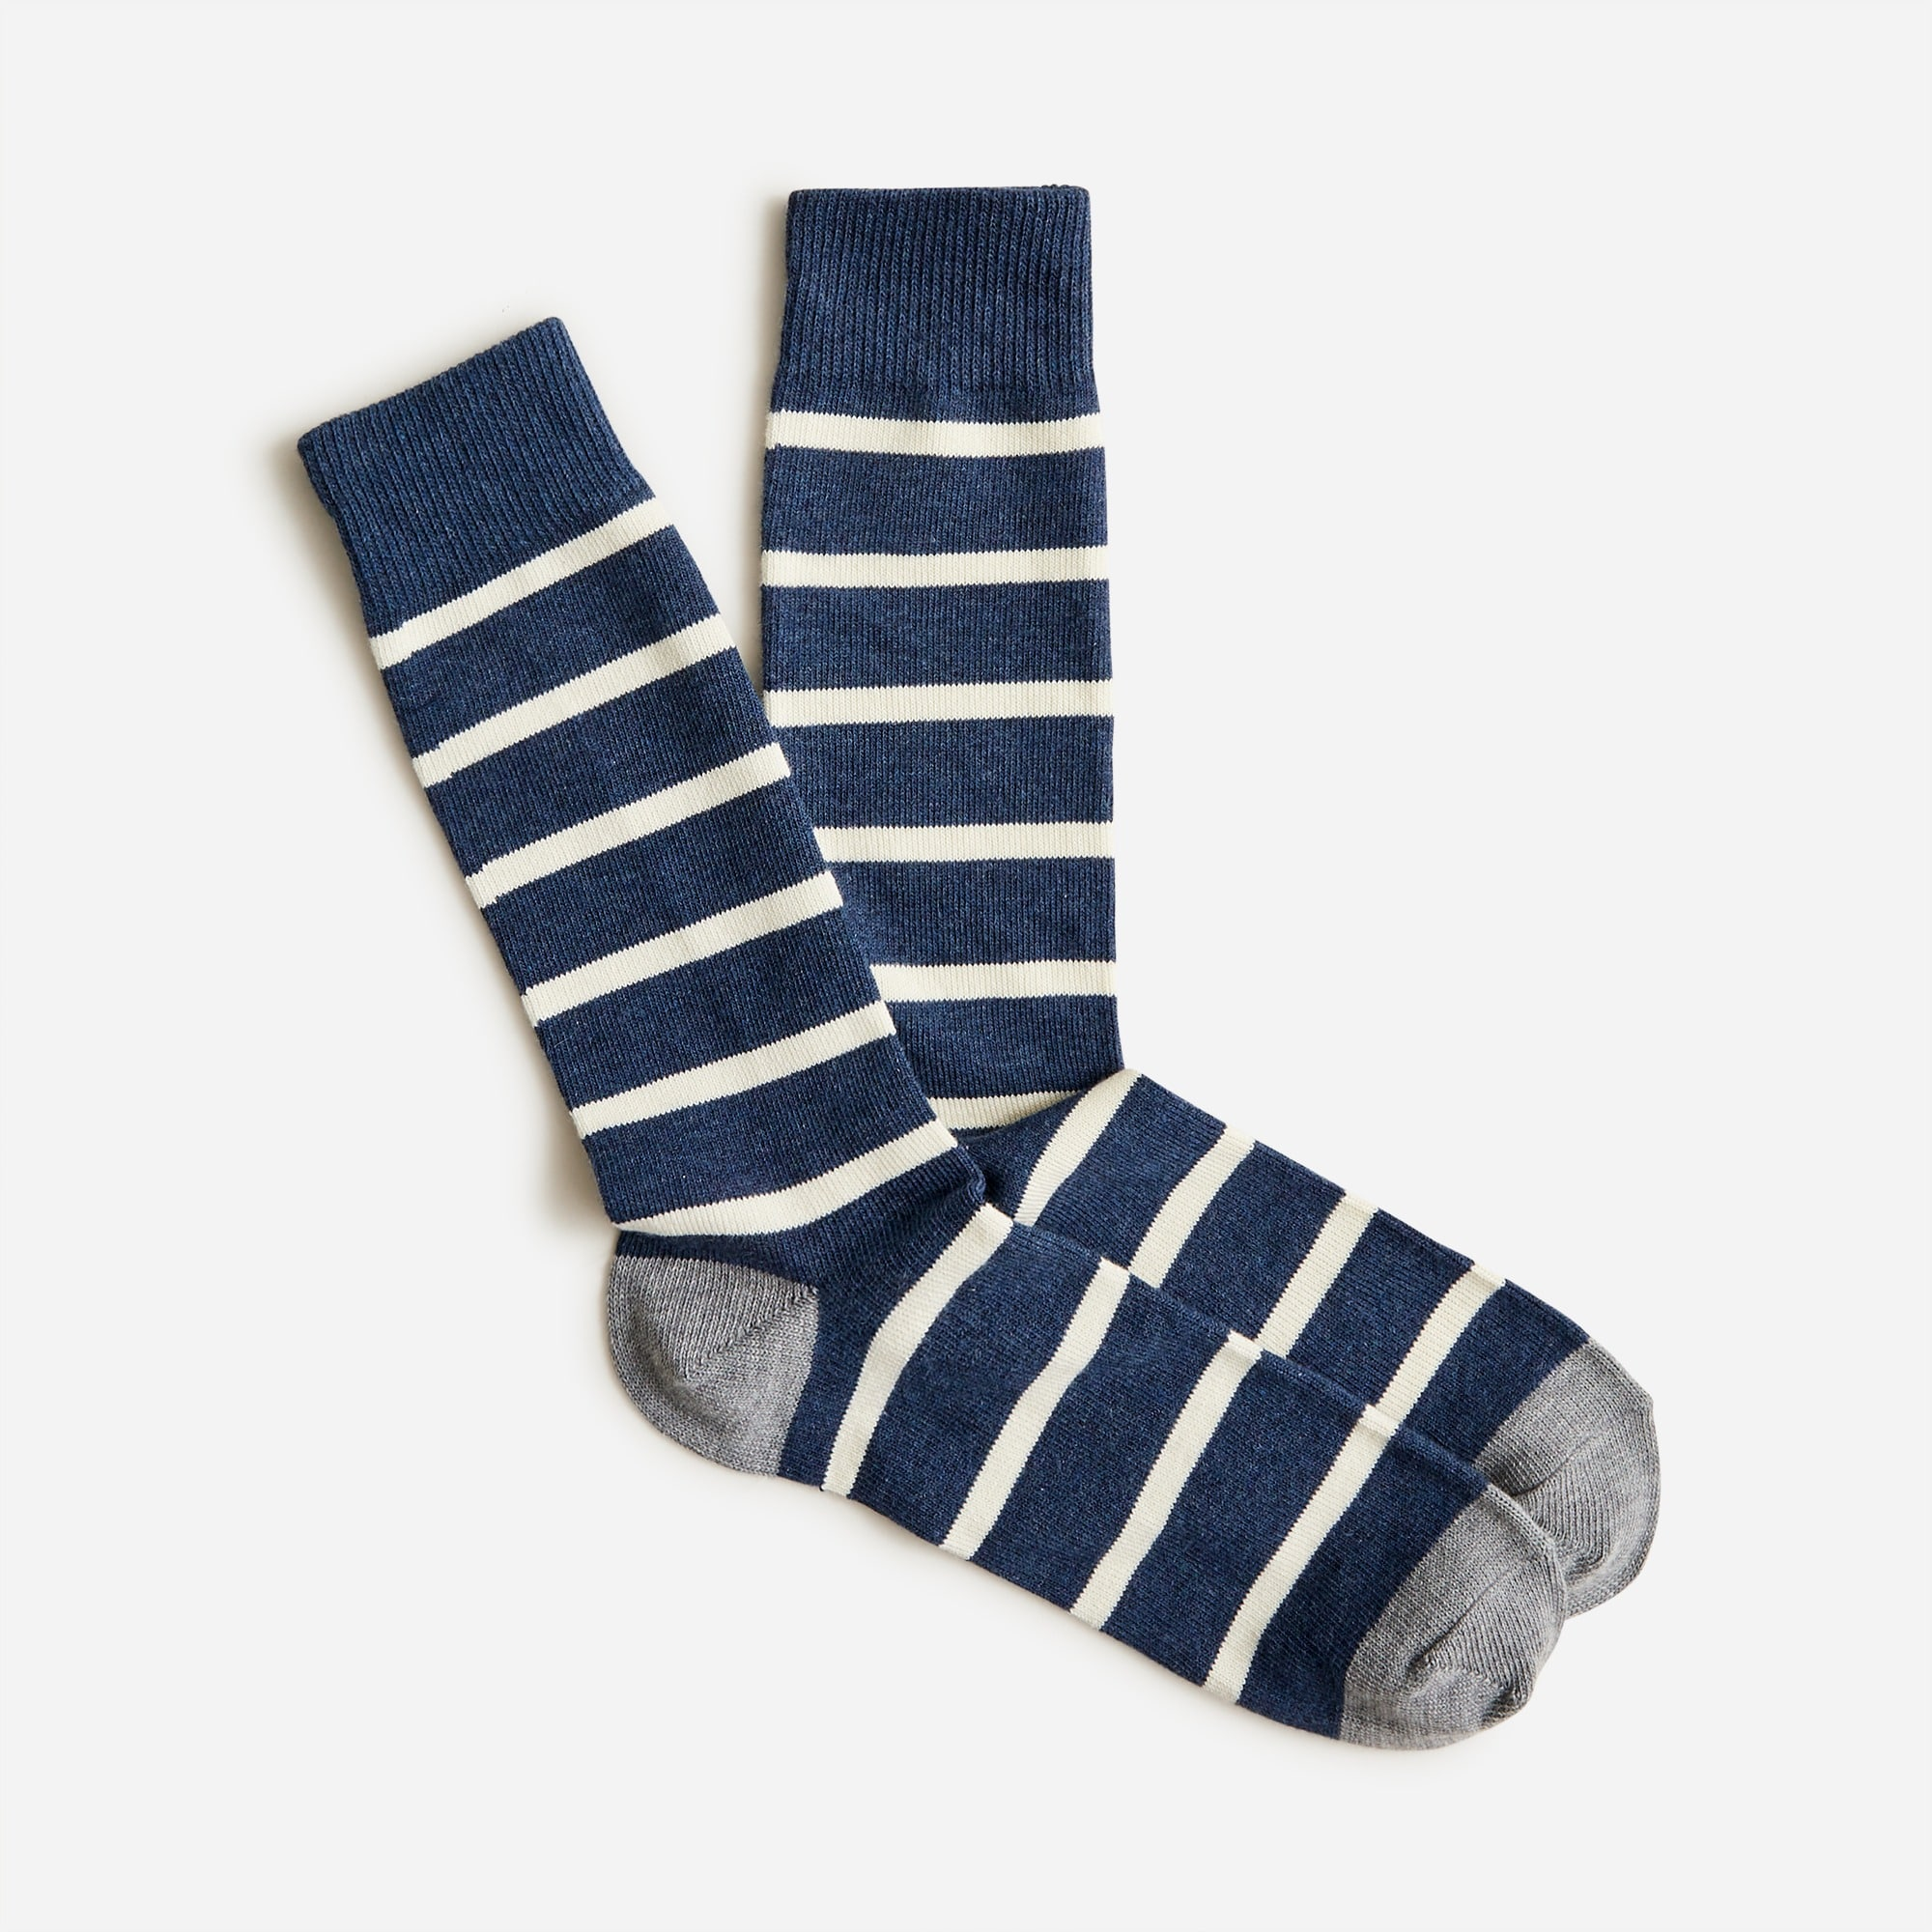 Naval-striped socks men socks c